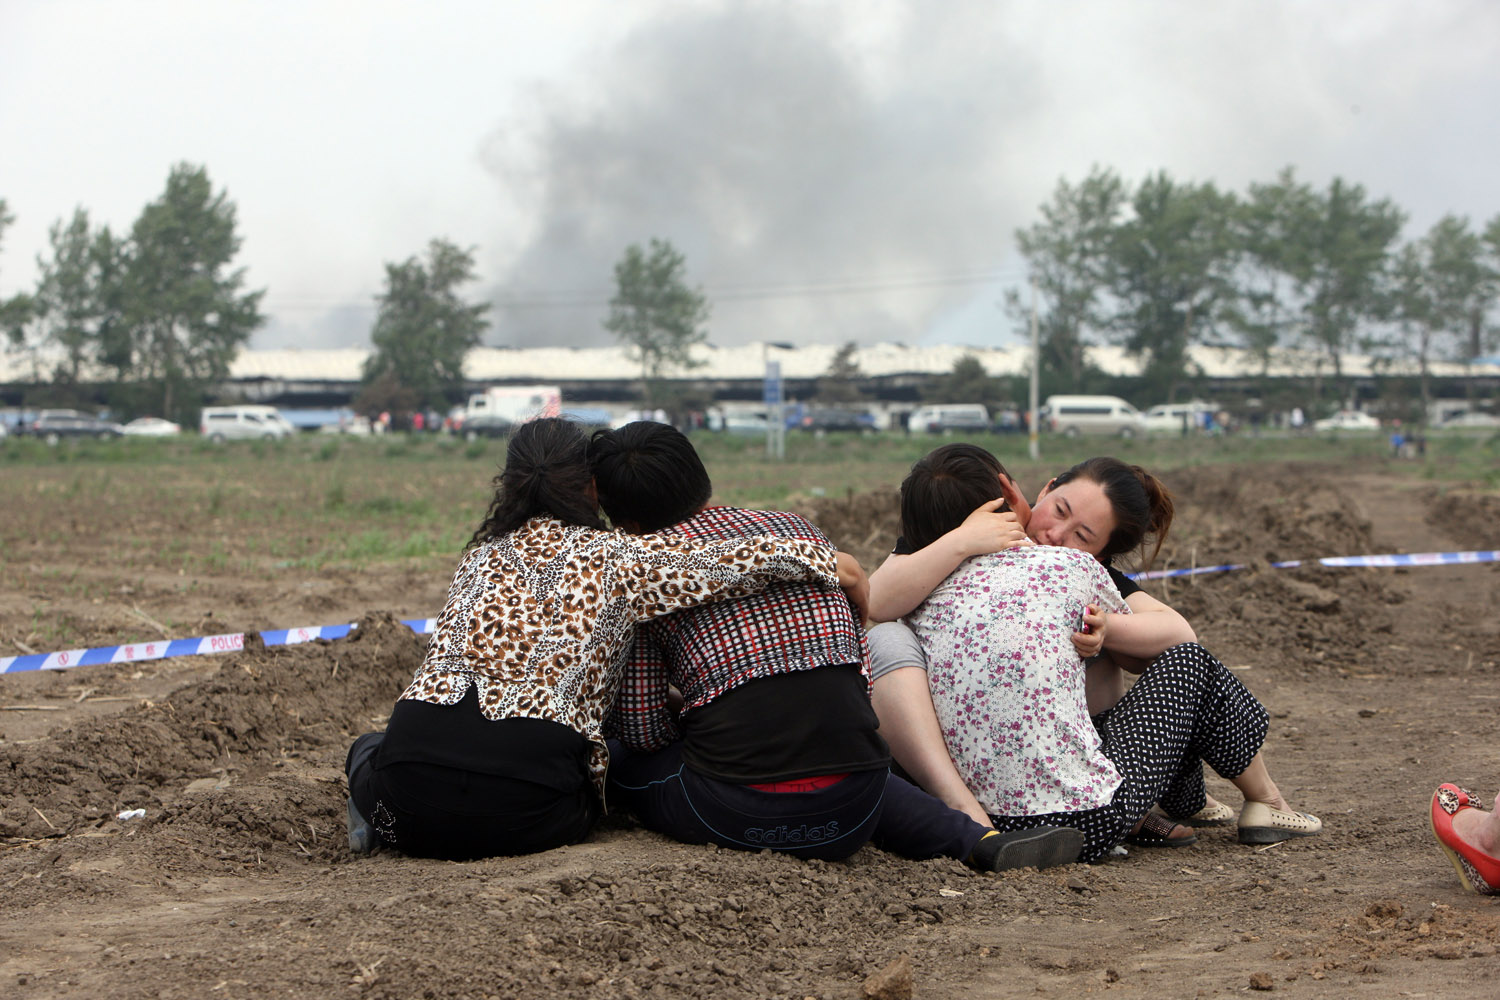 June 3, 2013. Victims' relatives are seen at the scene after a fire that killed 119 and injured 54 people at a locked poultry slaughterhouse in Dehui, northeast China's Jilin province.